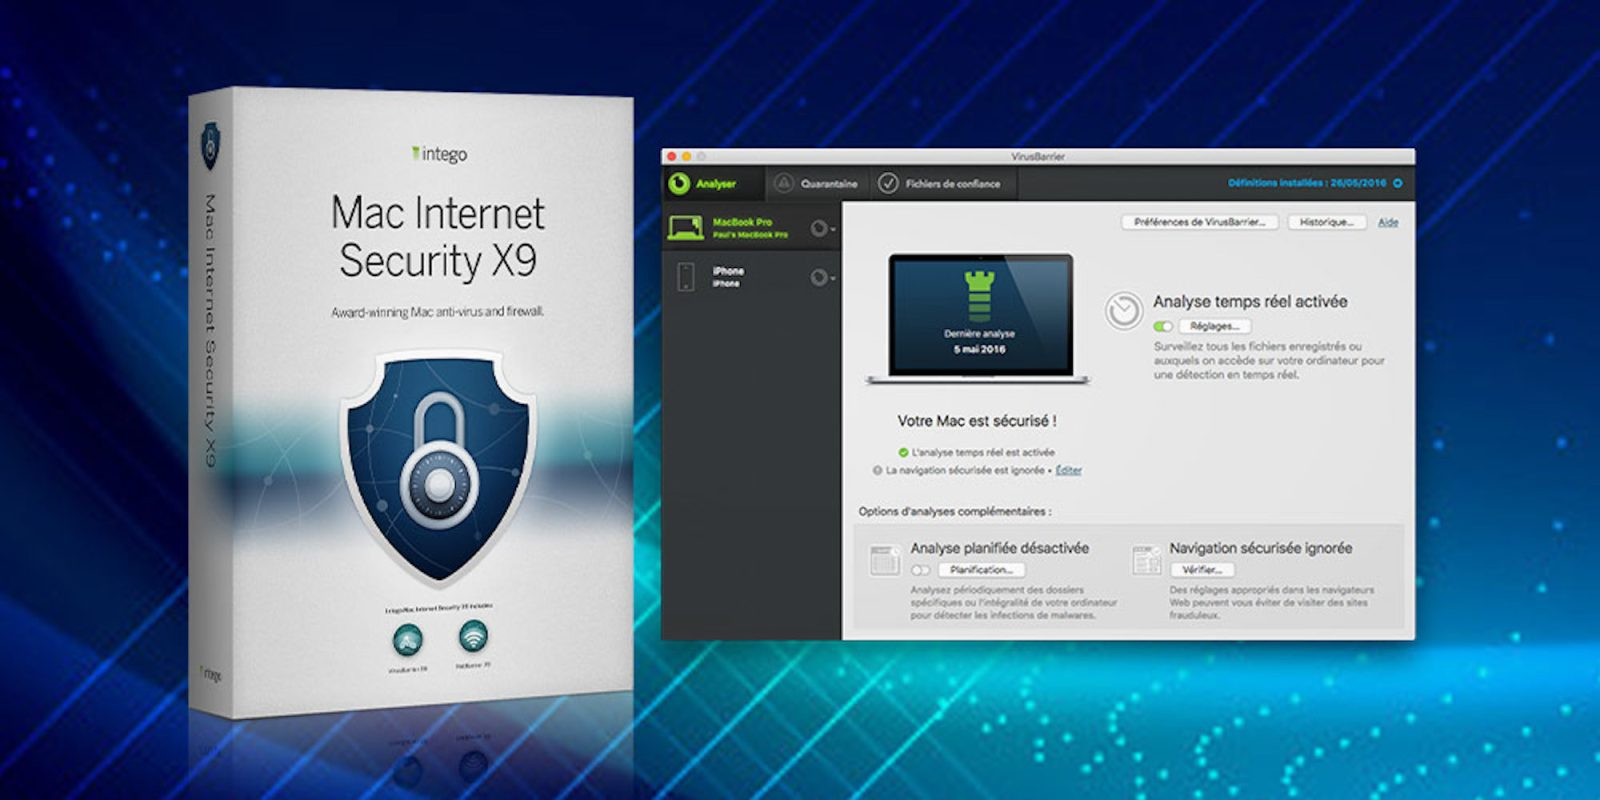 Shut down viruses with Intego Mac Internet Security X9 for $30 (Orig. $50)